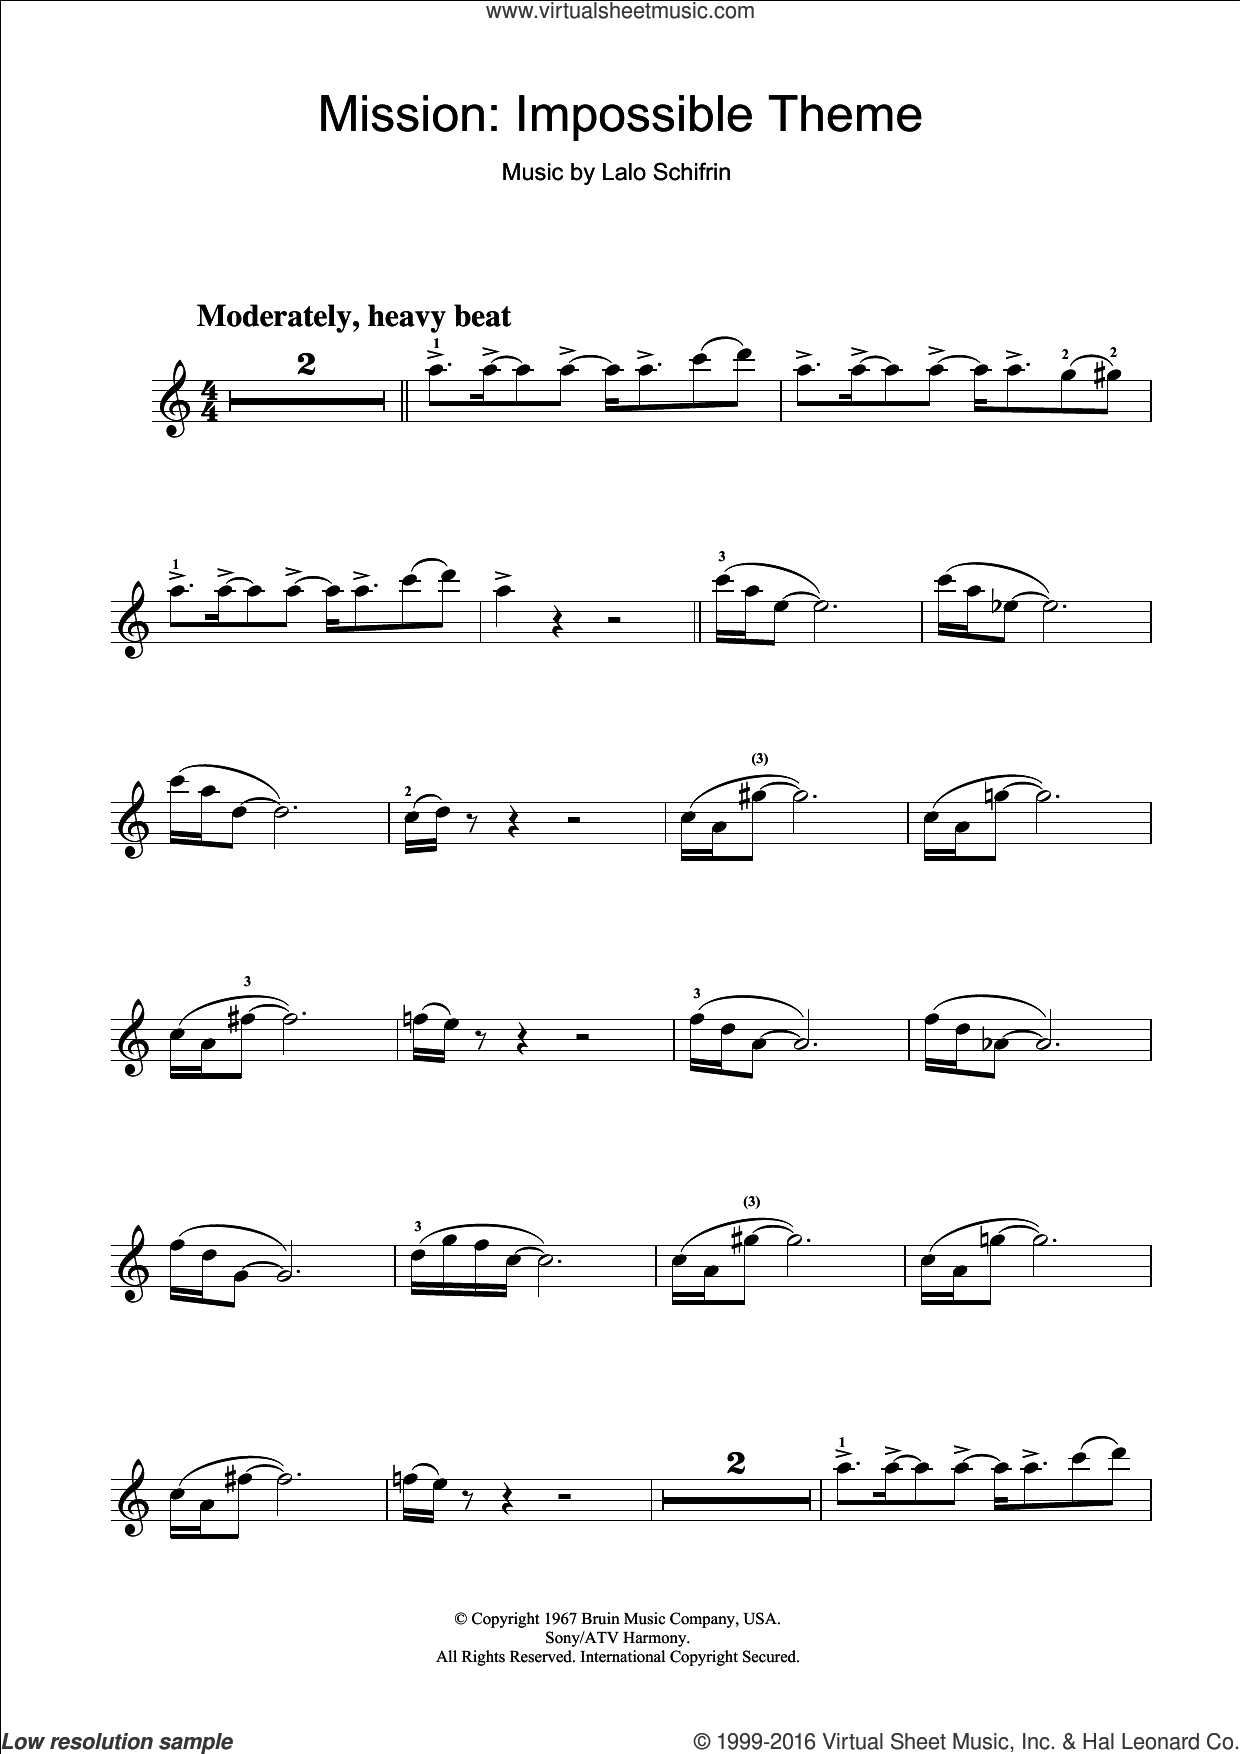 Mission: Impossible Theme (Mission Accomplished) sheet music for violin solo by Lalo Schifrin